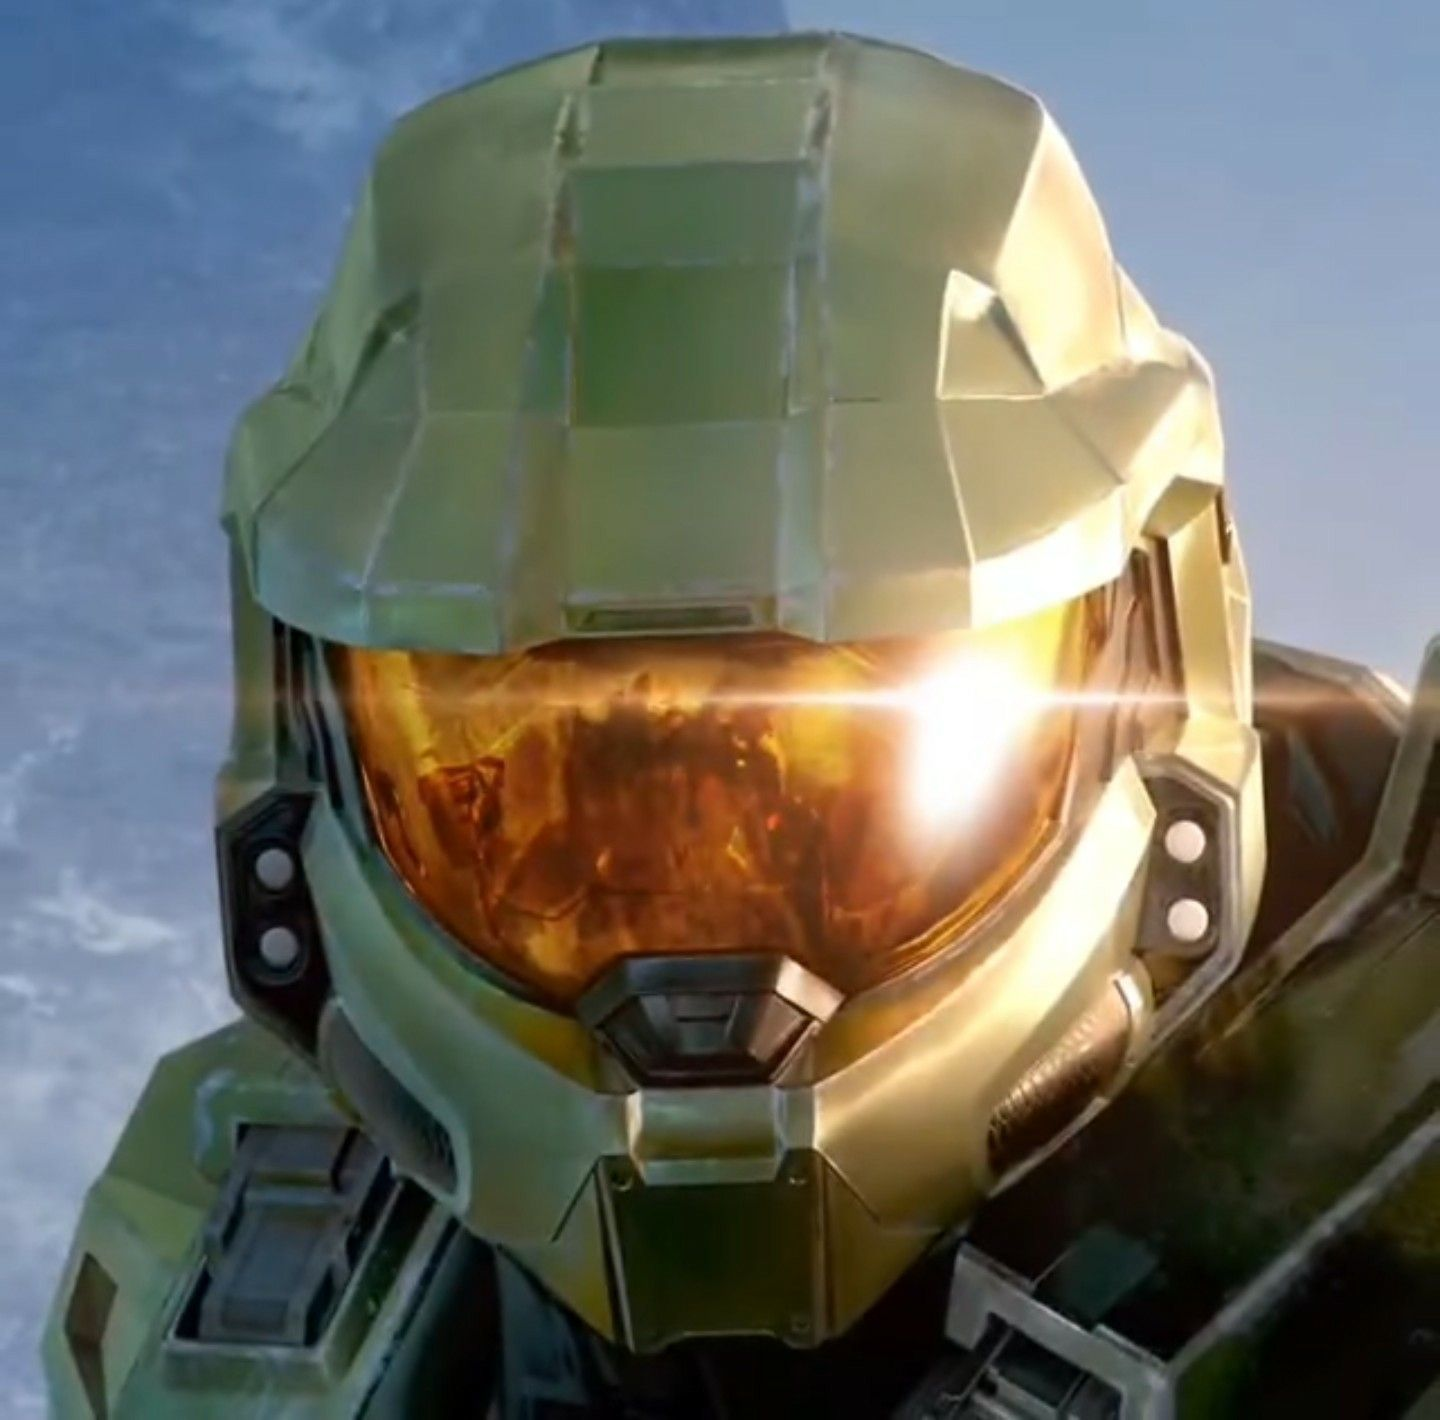 Pin by Eric Griffin on MASTER CHIEF & THE HALO UNIVERSE in